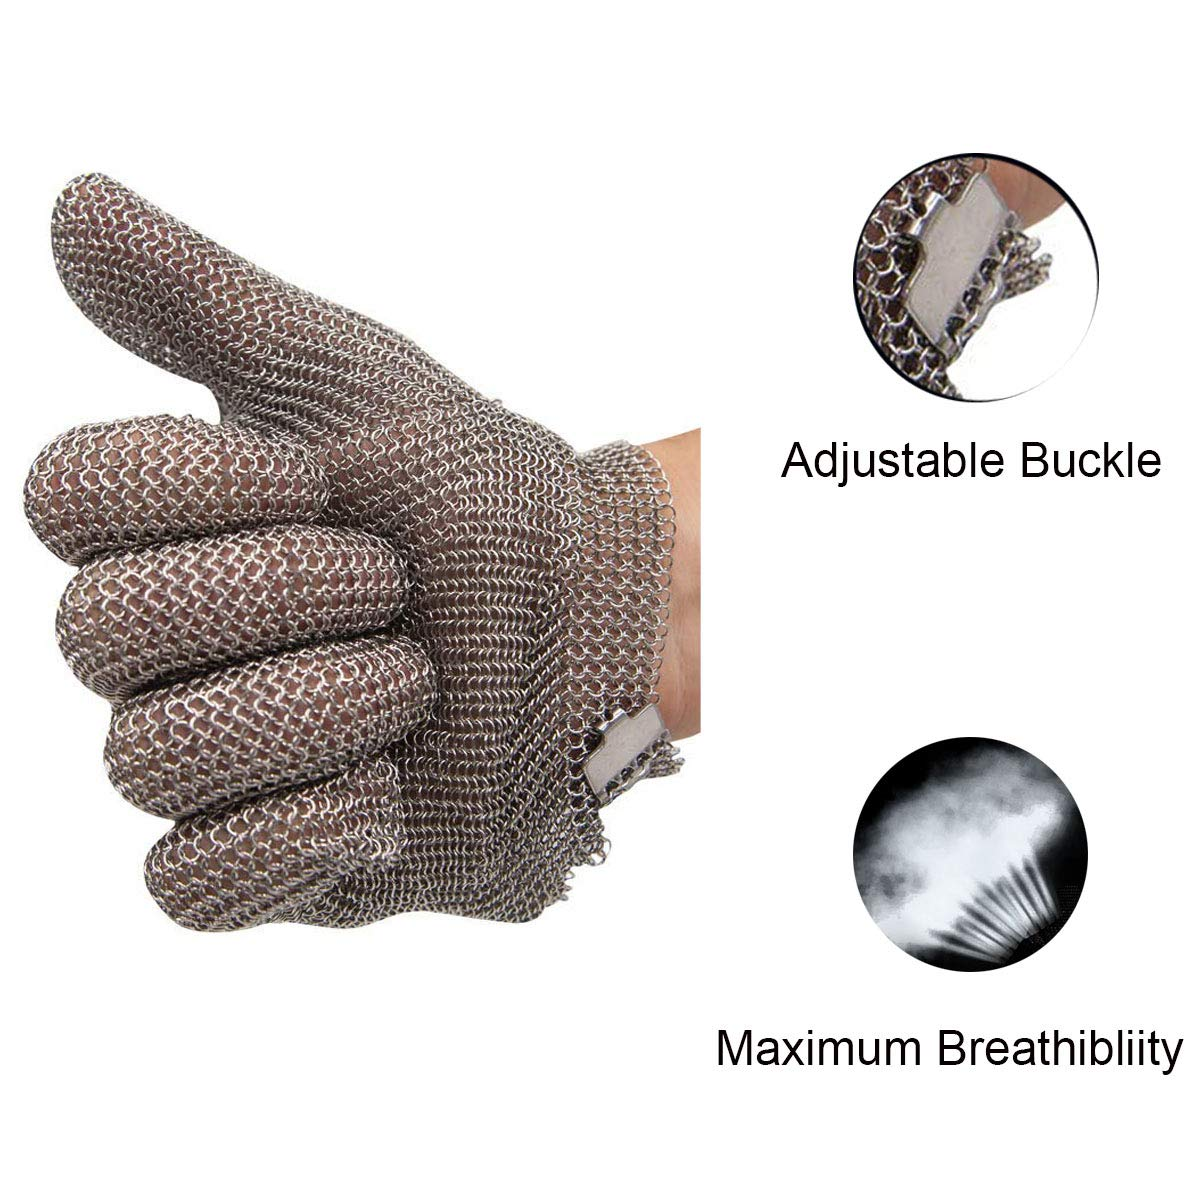 Schwer Stainless Steel Metal Mesh Chainmail Cut Resistant Glove for Food Handling, Meat Cutting Butchers Slicing Chopping Restaurant Work Safety(M) by Schwer (Image #5)